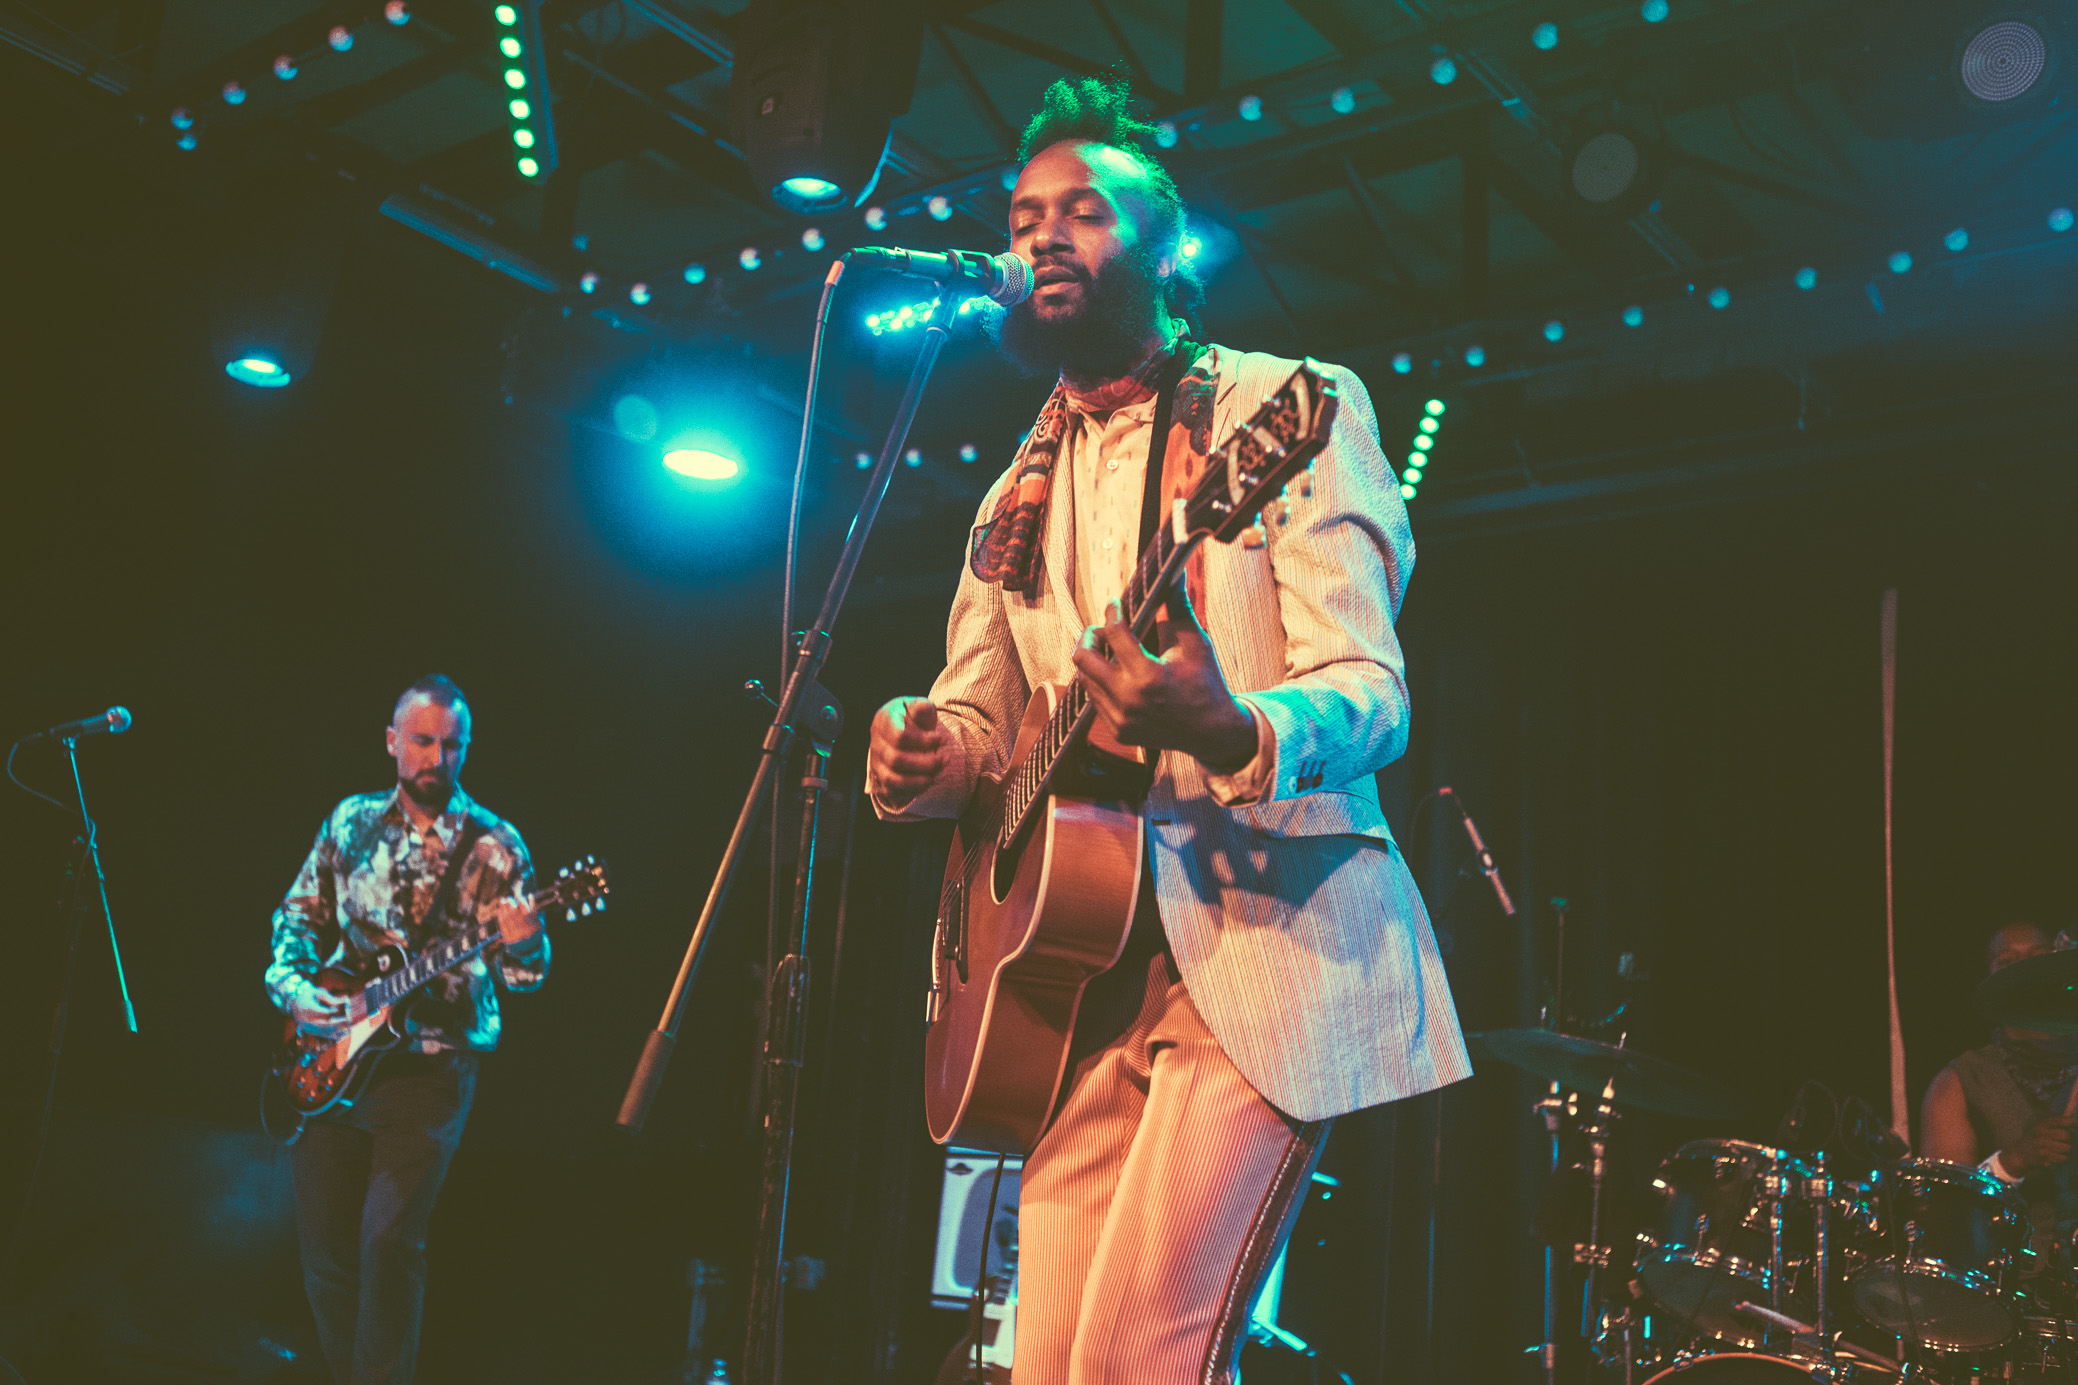 Fantastic Negrito performs in concert at Saturn Birmingham in Birmingham, Alabama on July 18th, 2018. (Photo by David A. Smith/DSmithScenes)